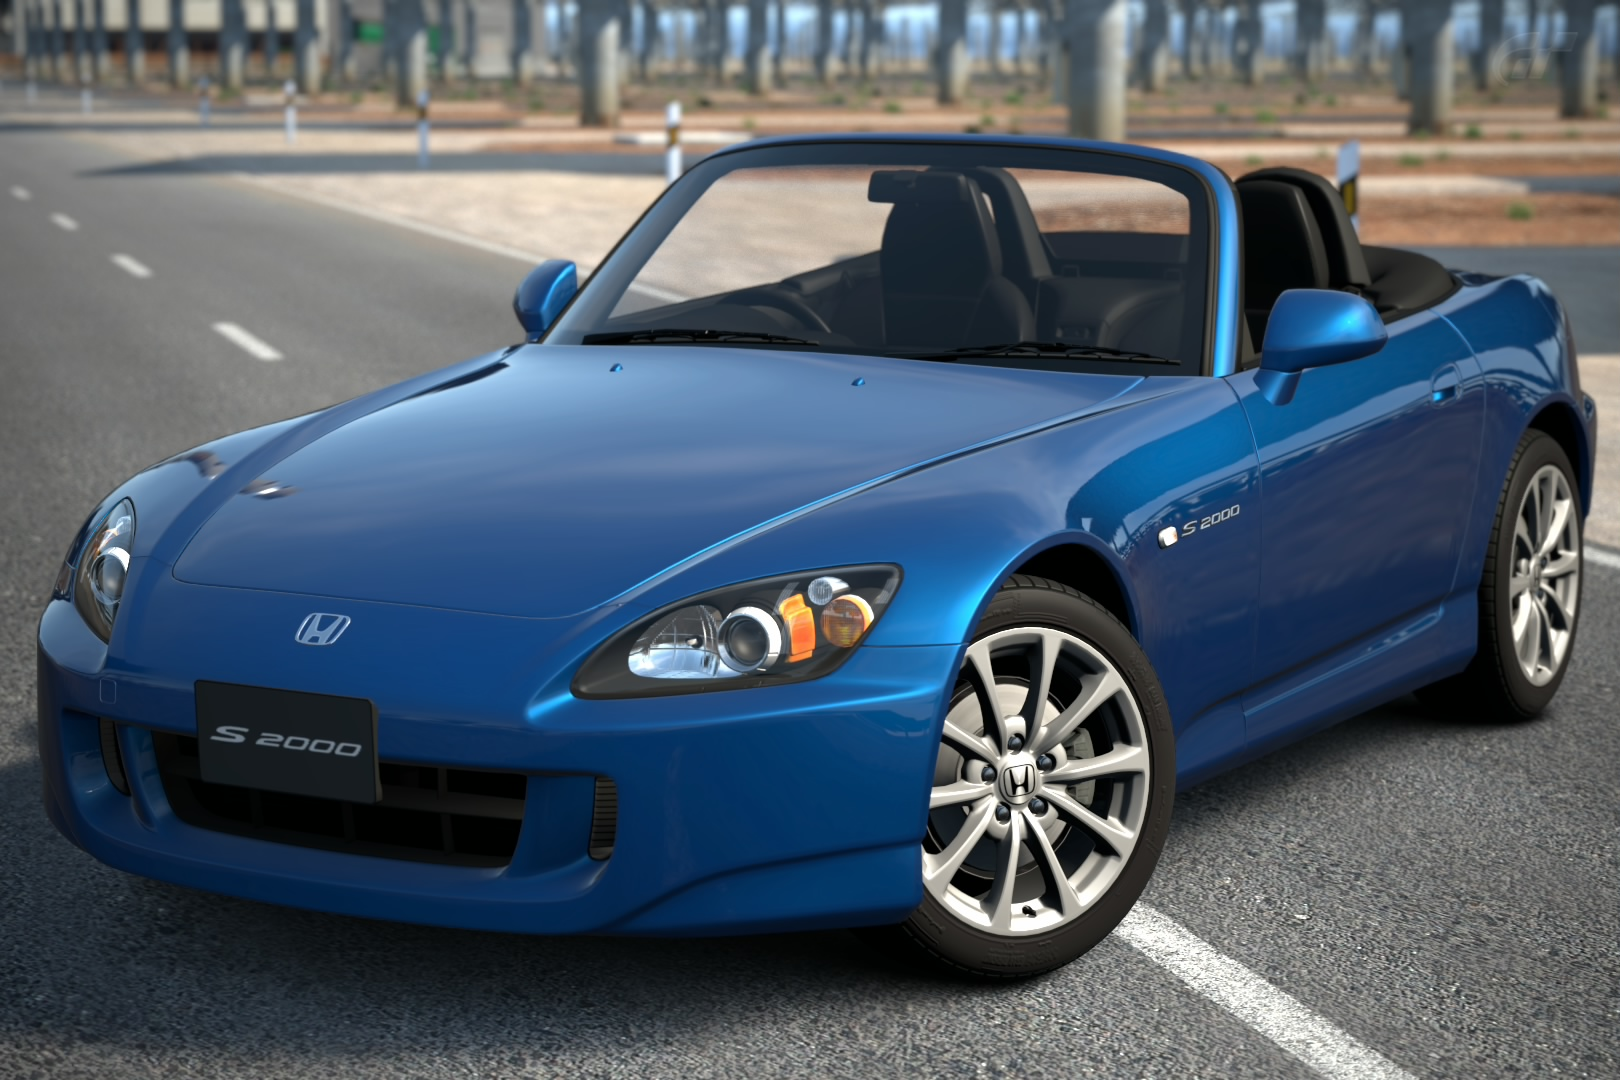 honda s2000 39 06 gran turismo wiki fandom powered by wikia. Black Bedroom Furniture Sets. Home Design Ideas